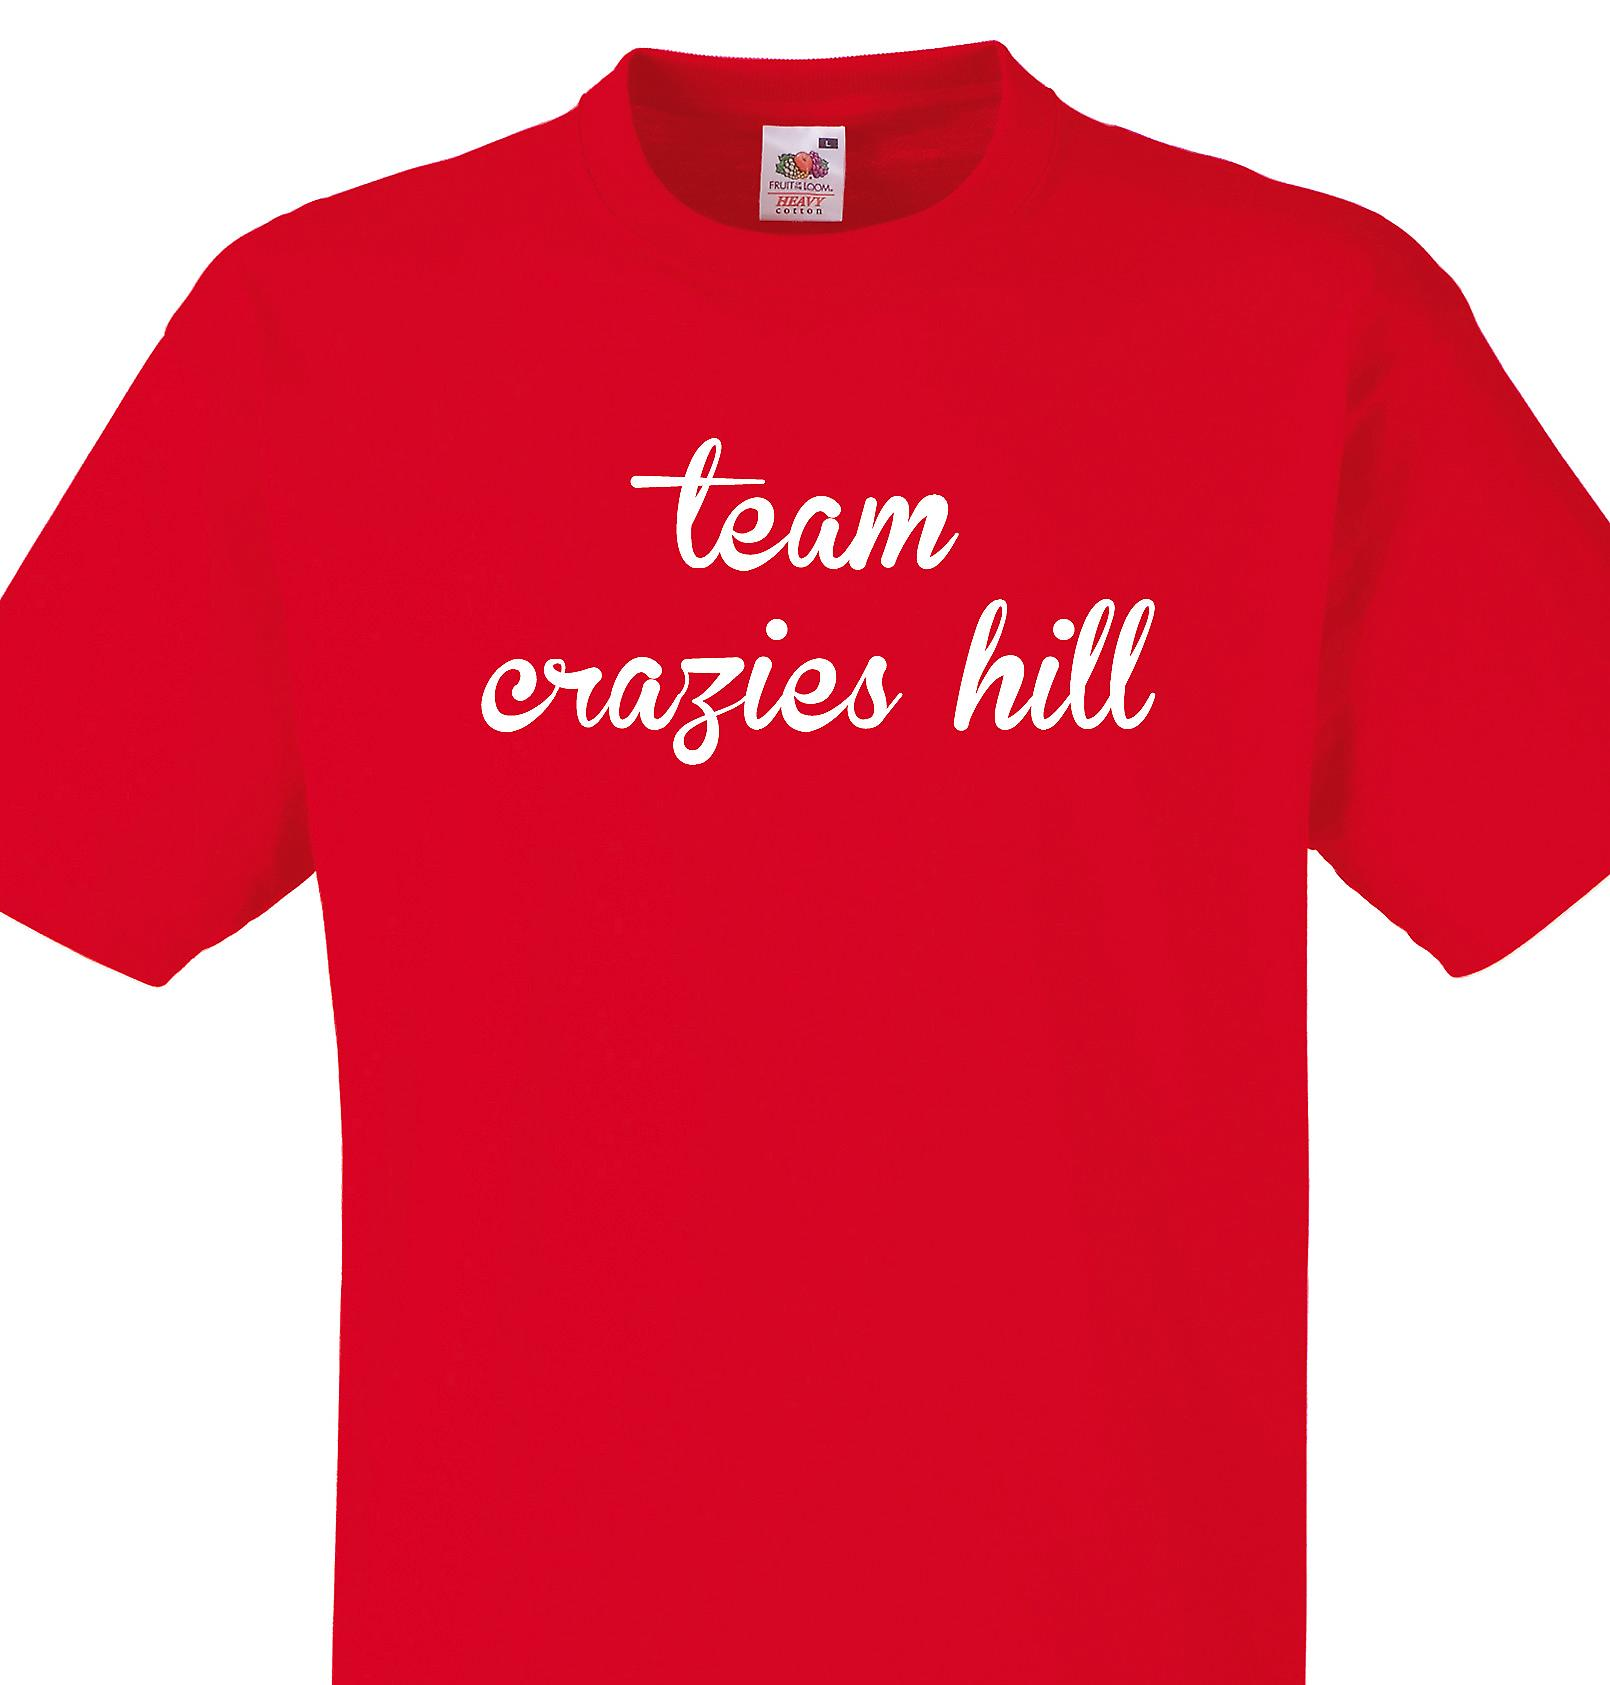 Team Crazies hill Red T shirt